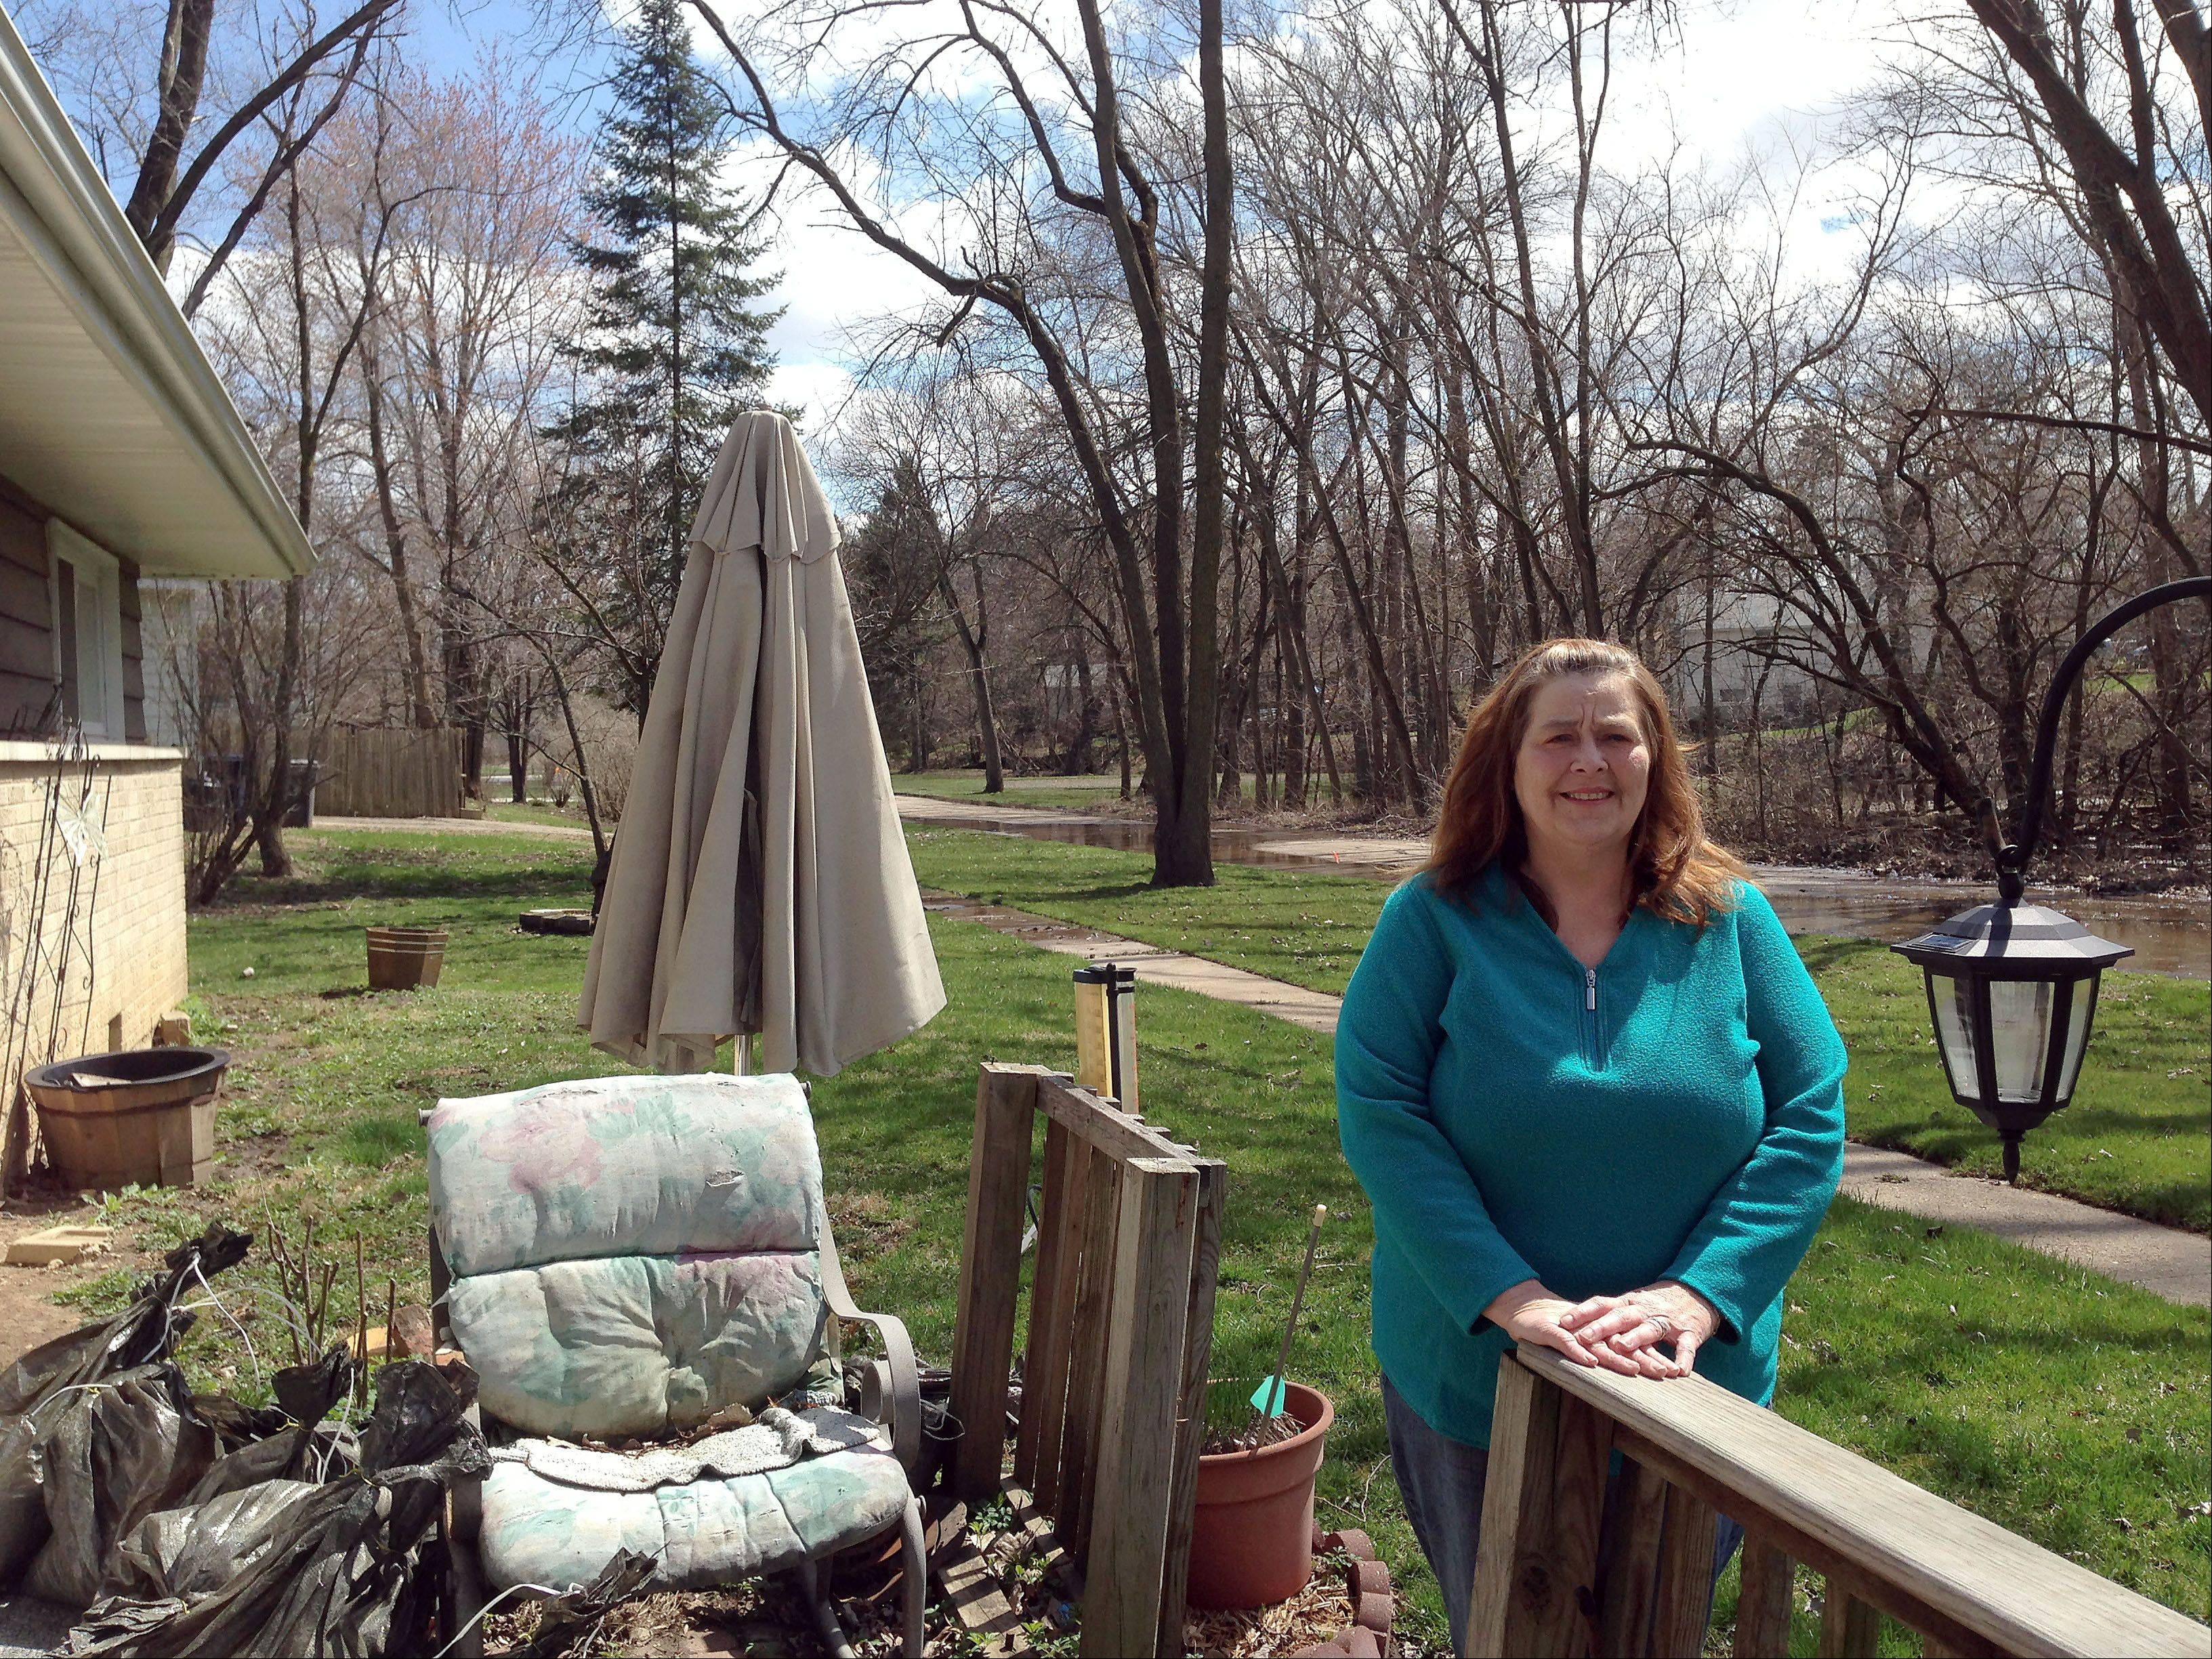 ELENA FERRARIN/eferrarin@dailyherald.comSpring and fall are always stressful times for Lorie Granderson, who lives in her childhood home on Willard Avenue, across the street from Willow Creek in Elgin. Last week's storms were the second worst in memory, with the water stopping 7 to 8 feet from her garage.